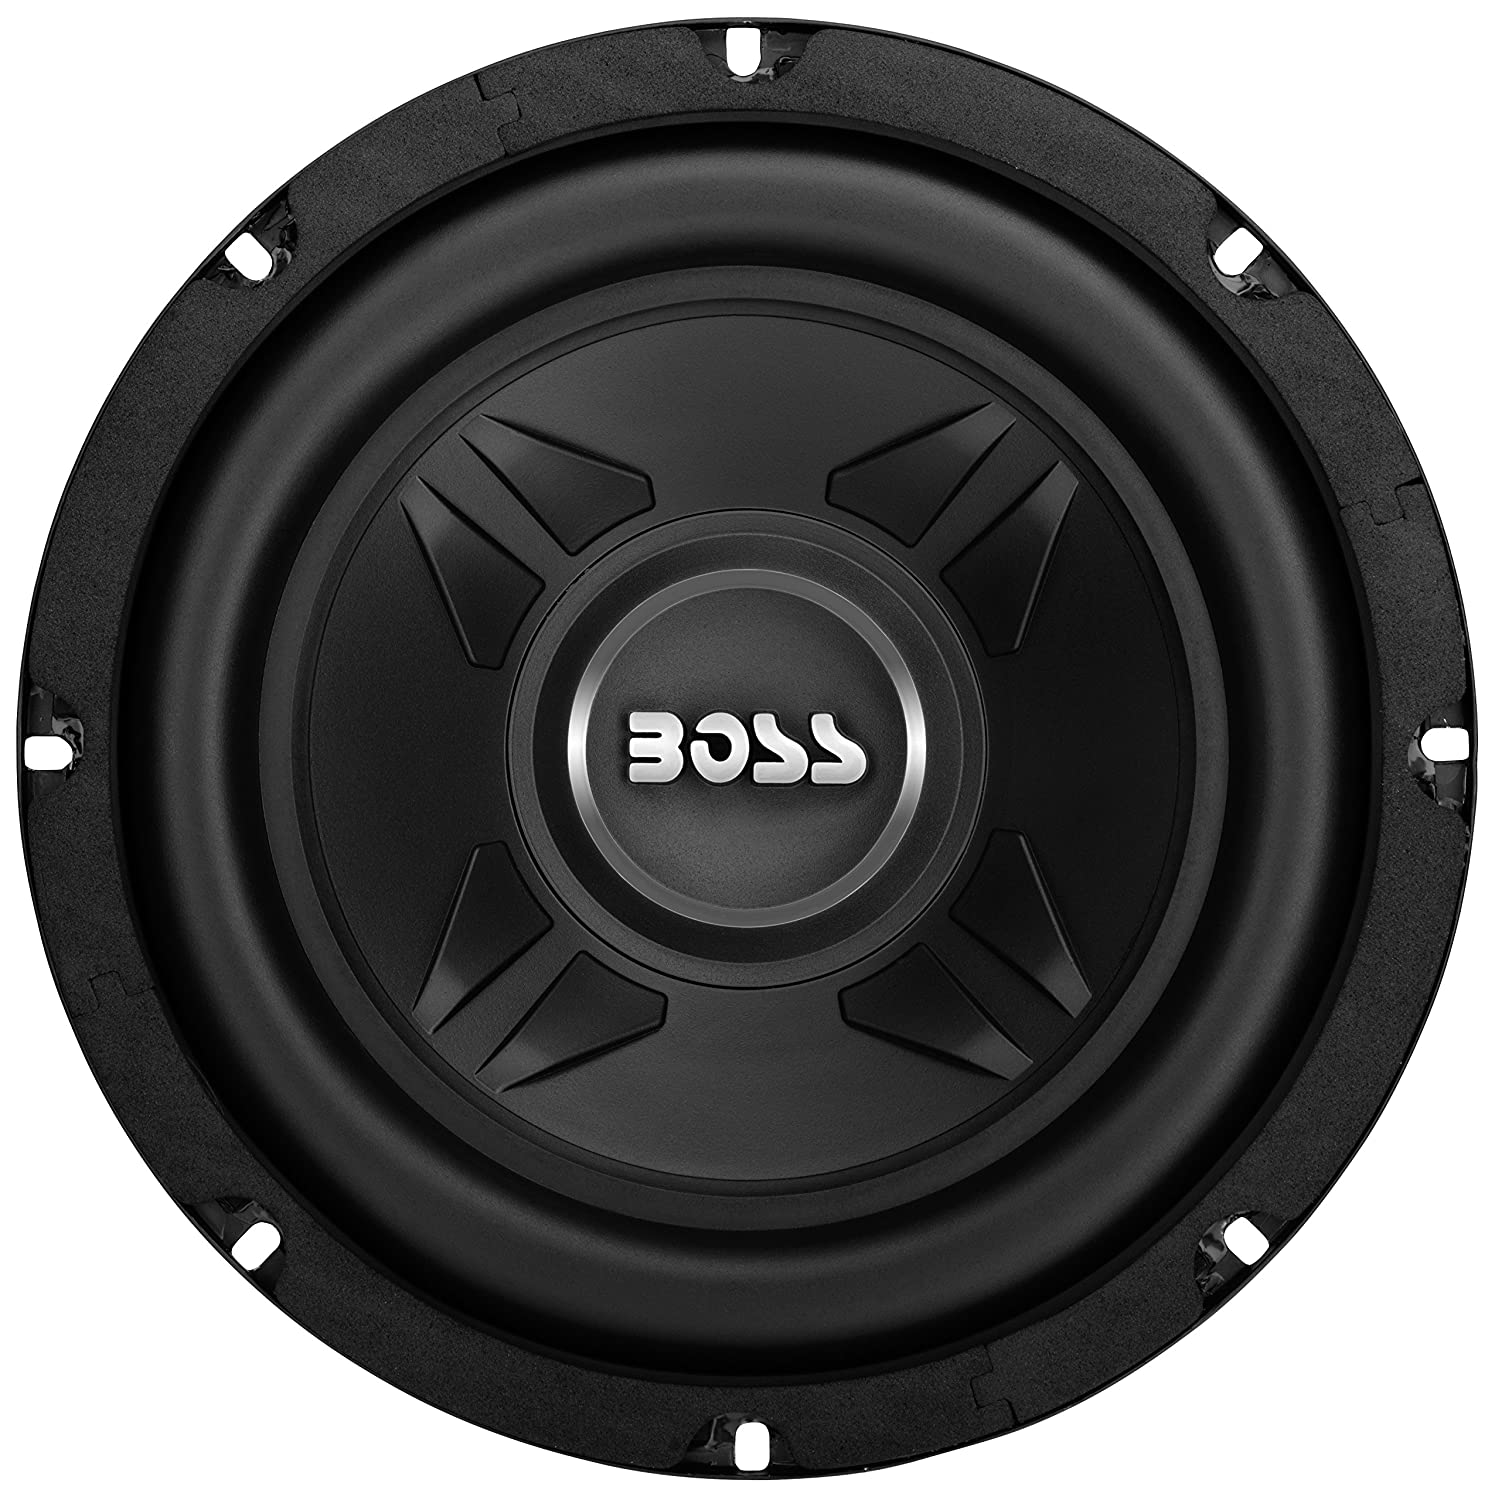 BOSS Audio CXX8 8 Inch Car Subwoofer - 600 Watts Maximum Power, Single 4 Ohm Voice Coil, Easy Mounting, Sold Individually